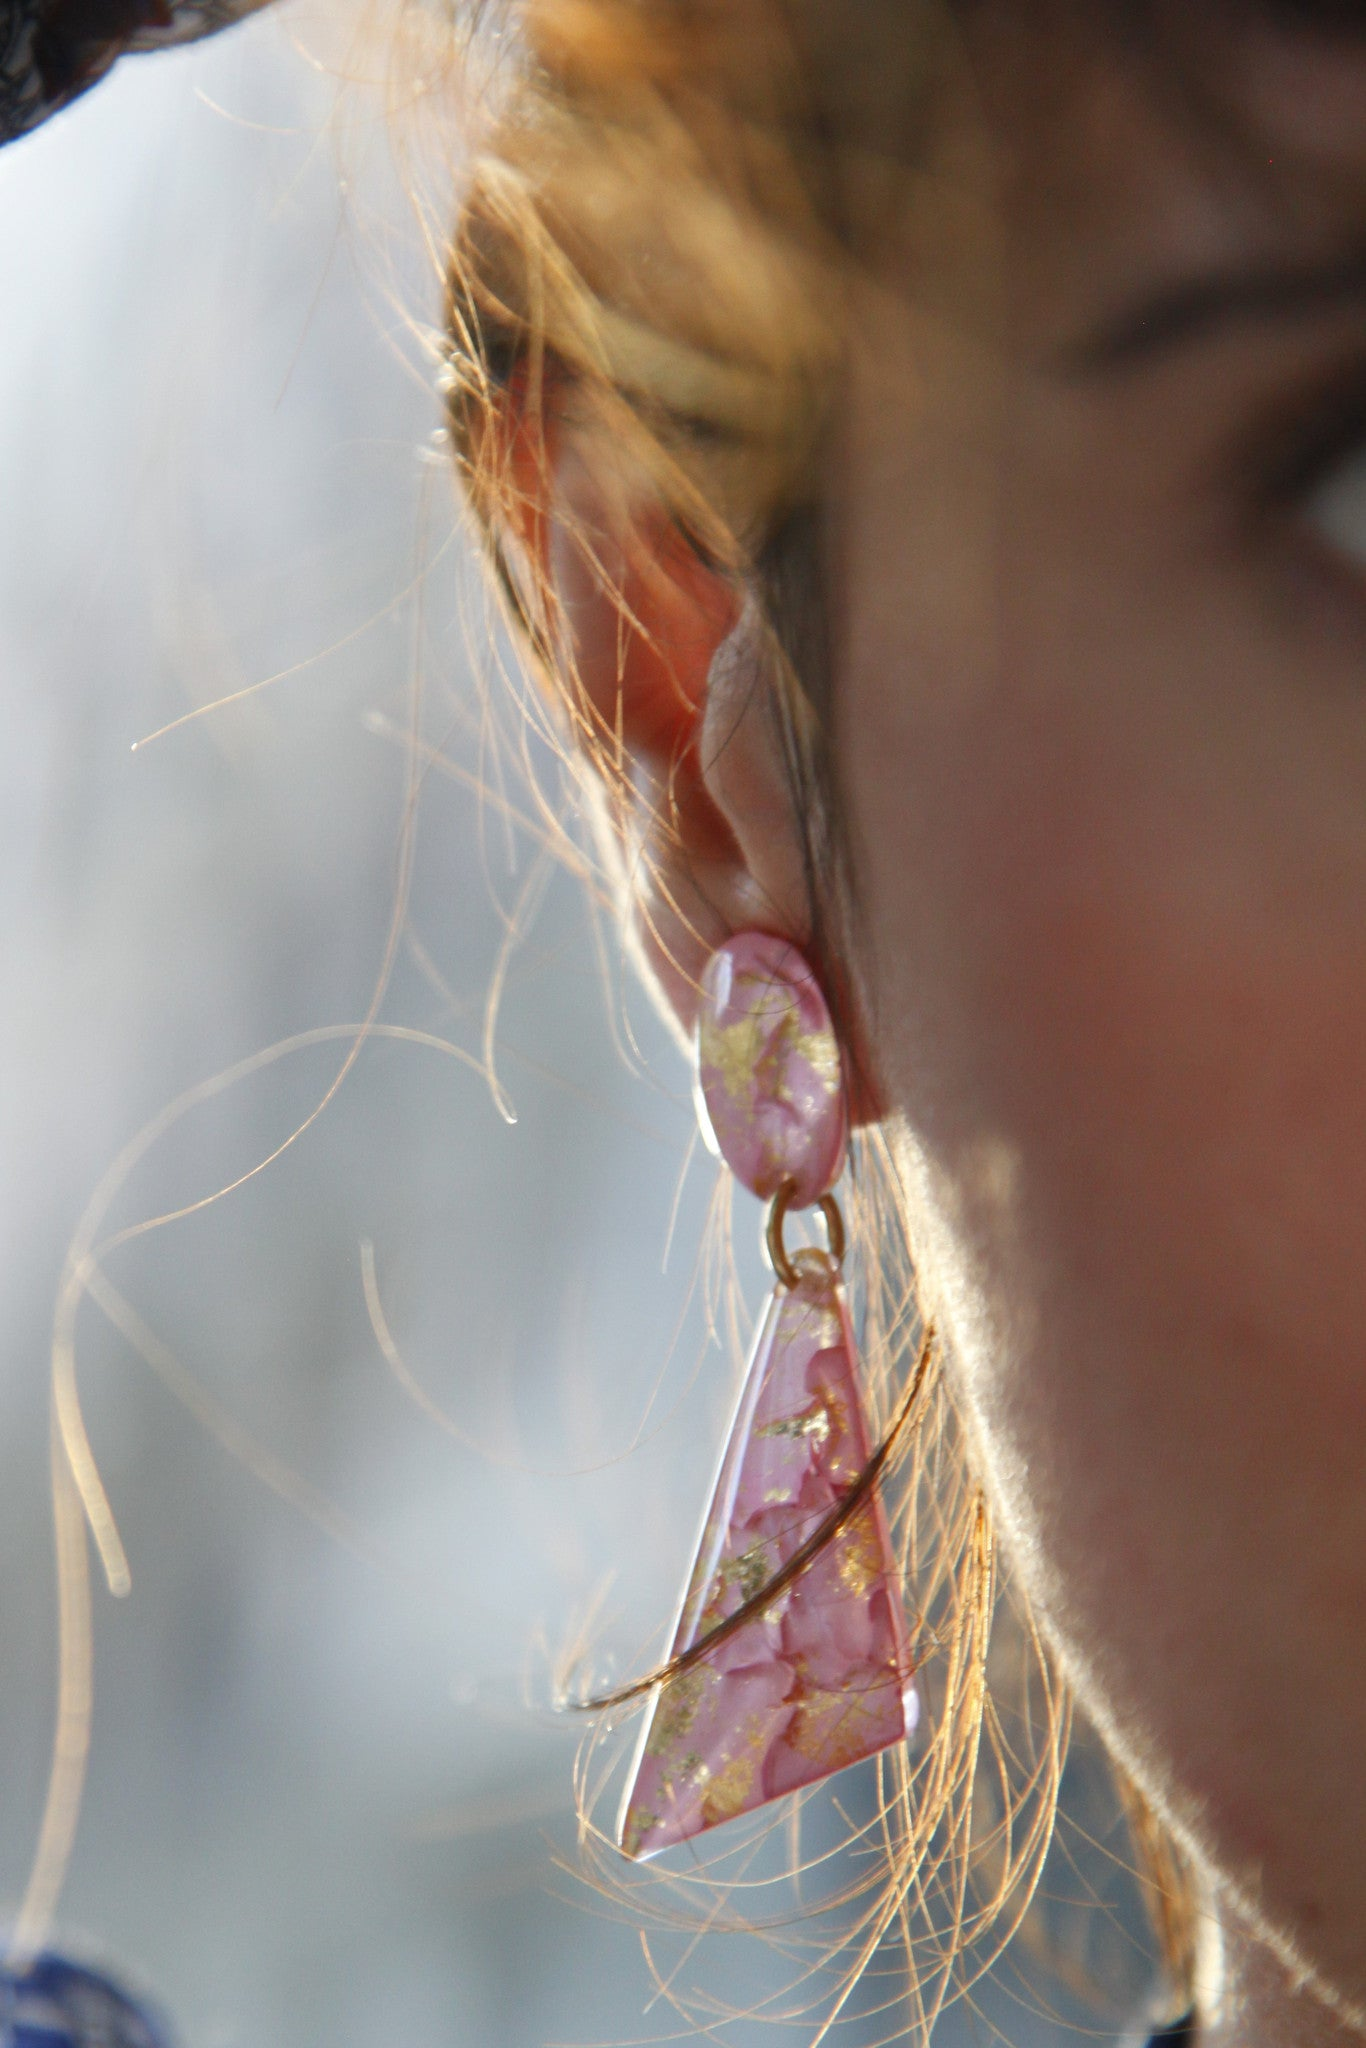 Cara's Dangling Earrings - Rose (petite) / les boucles pendantes de Cara